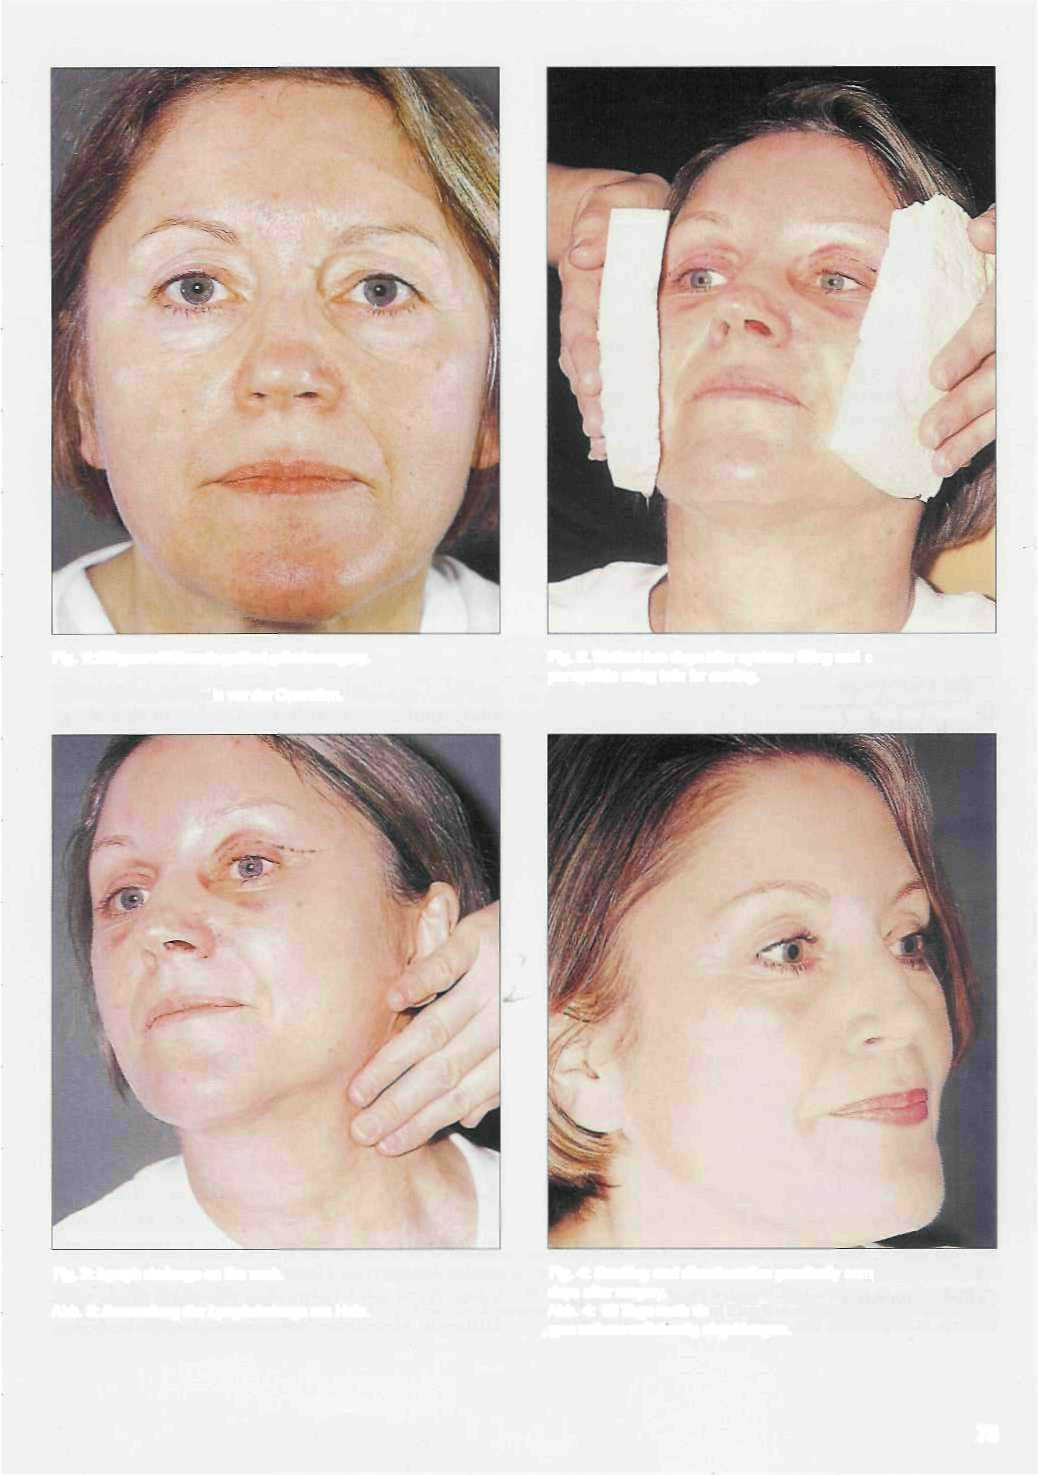 Aesthetic Facial Surgery 28